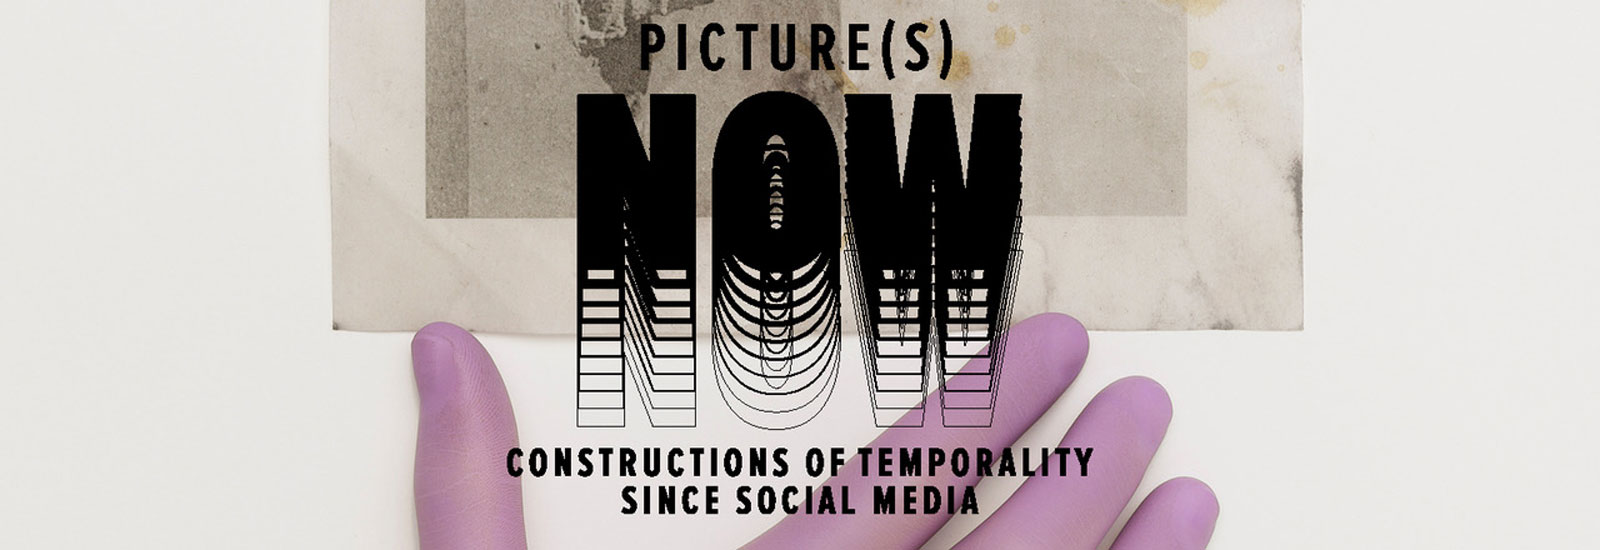 »Picture(s) Now: Constructions of Temporality since Social Media«